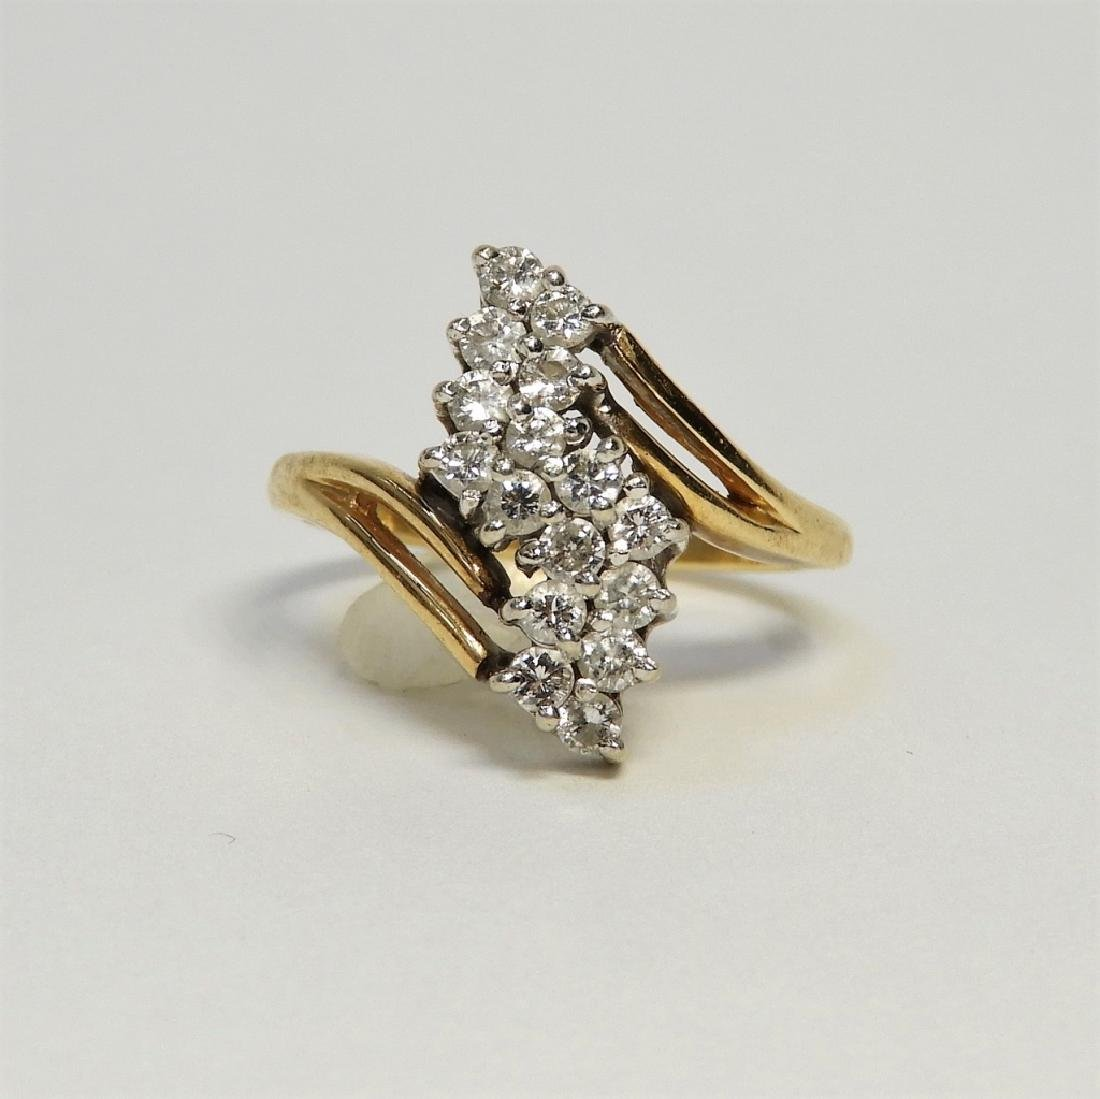 14K Yellow Gold & Diamond Lady's Cluster Ring